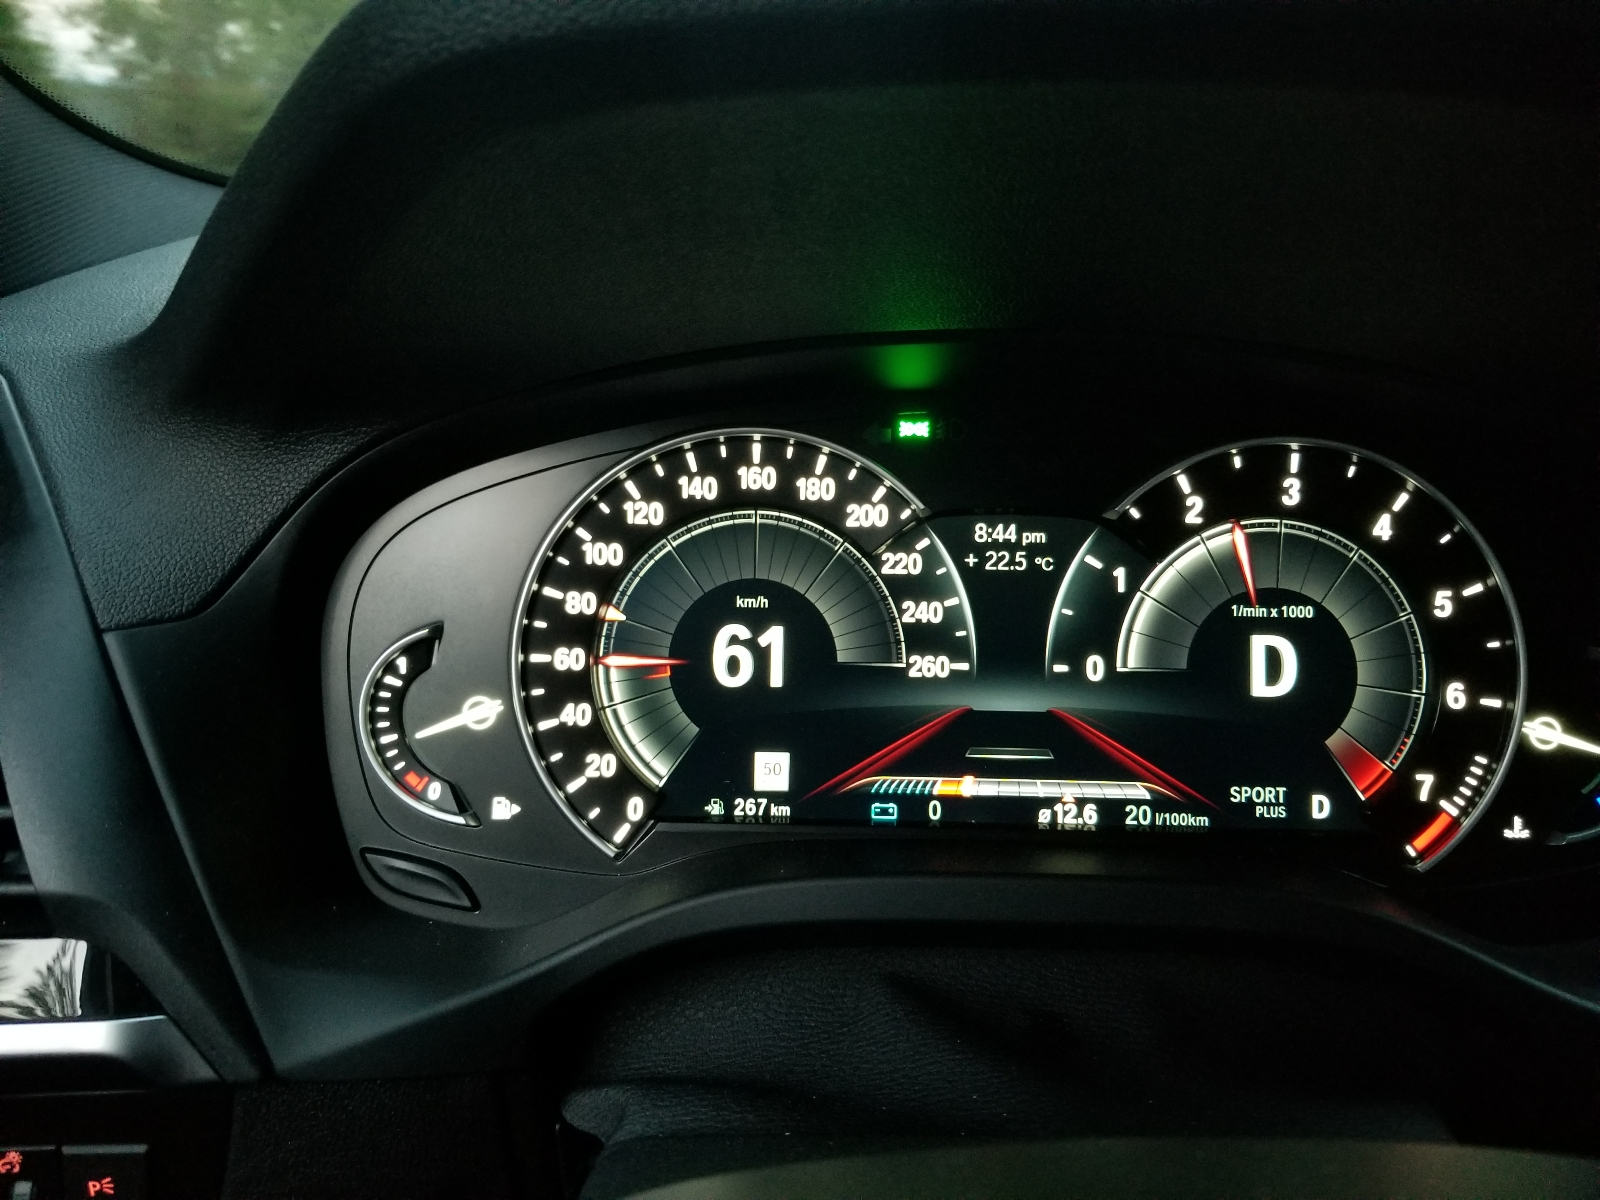 Digital speedo in Comfort/Eco-Pro mode - XBimmers | BMW X3 Forum